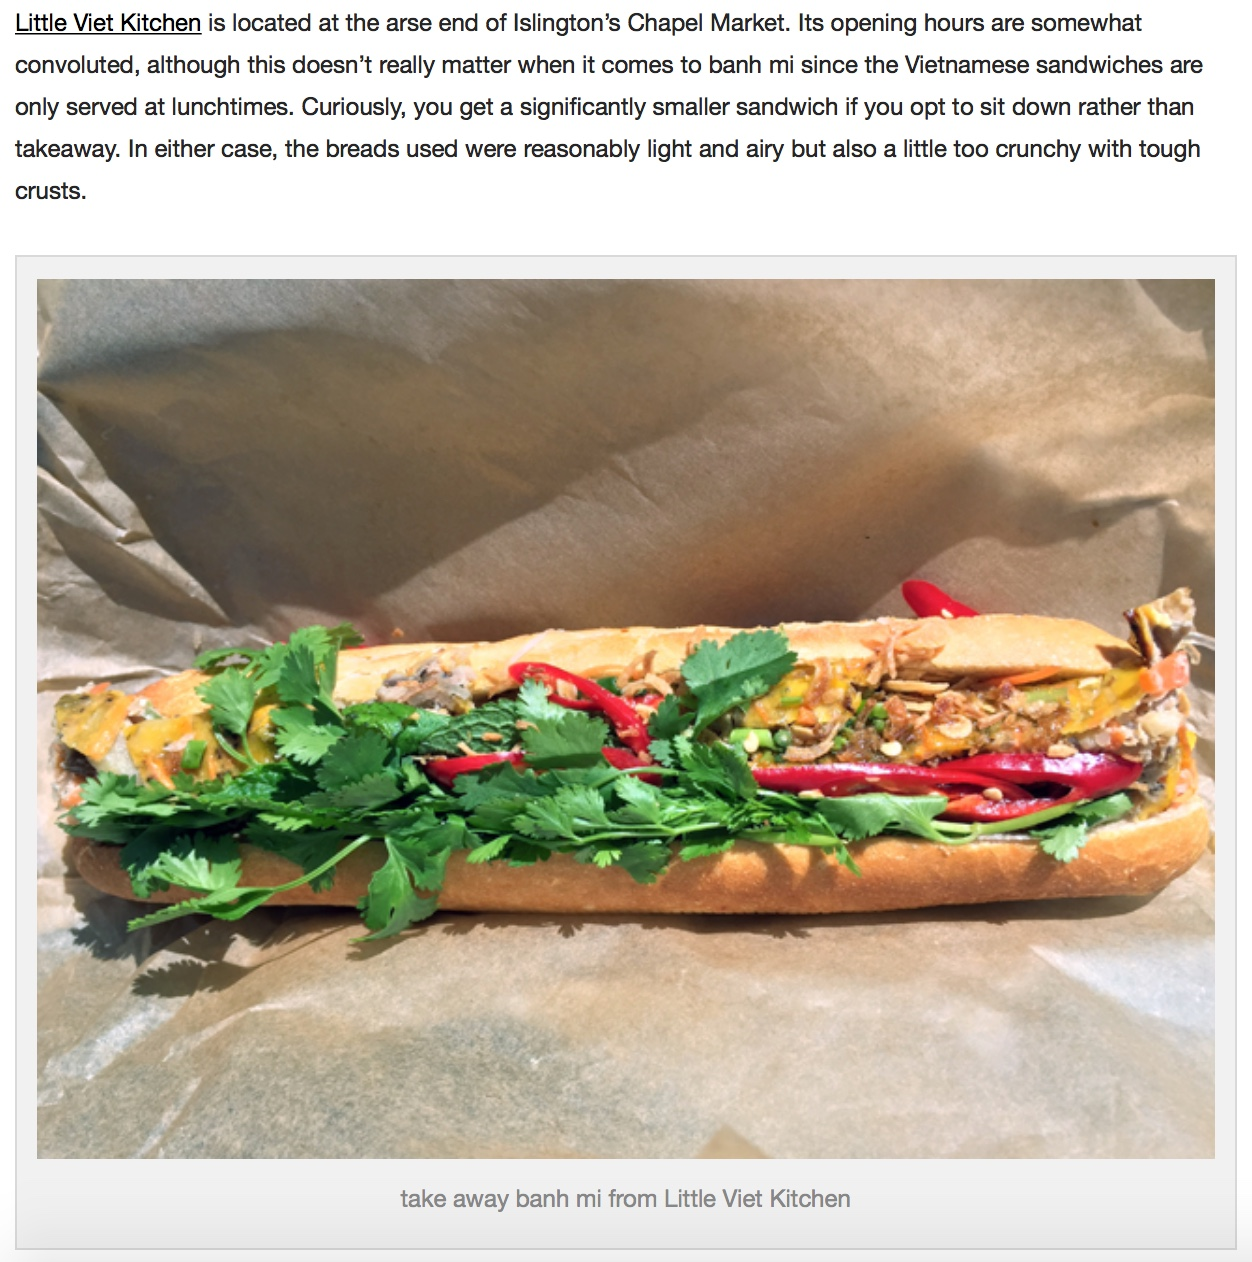 Picky Glutton have posted an in depth review of our delicious banh mi.   https://pickyglutton.com/2015/08/17/banh-mi-in-london-review/#Littlevietkitchen